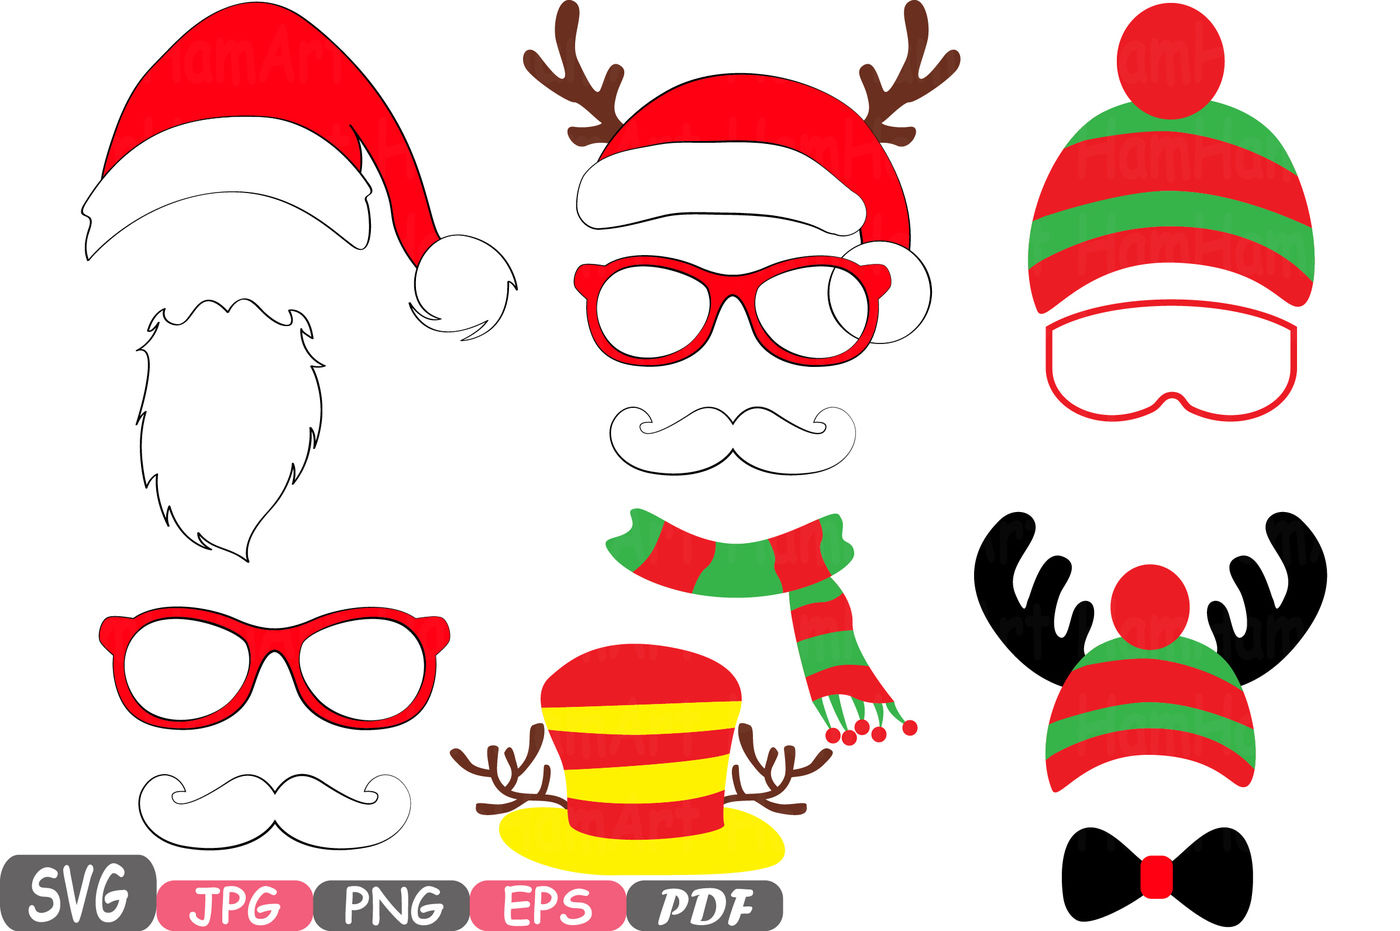 Christmas Props Party Photo Booth Silhouette Costume Cutting Files